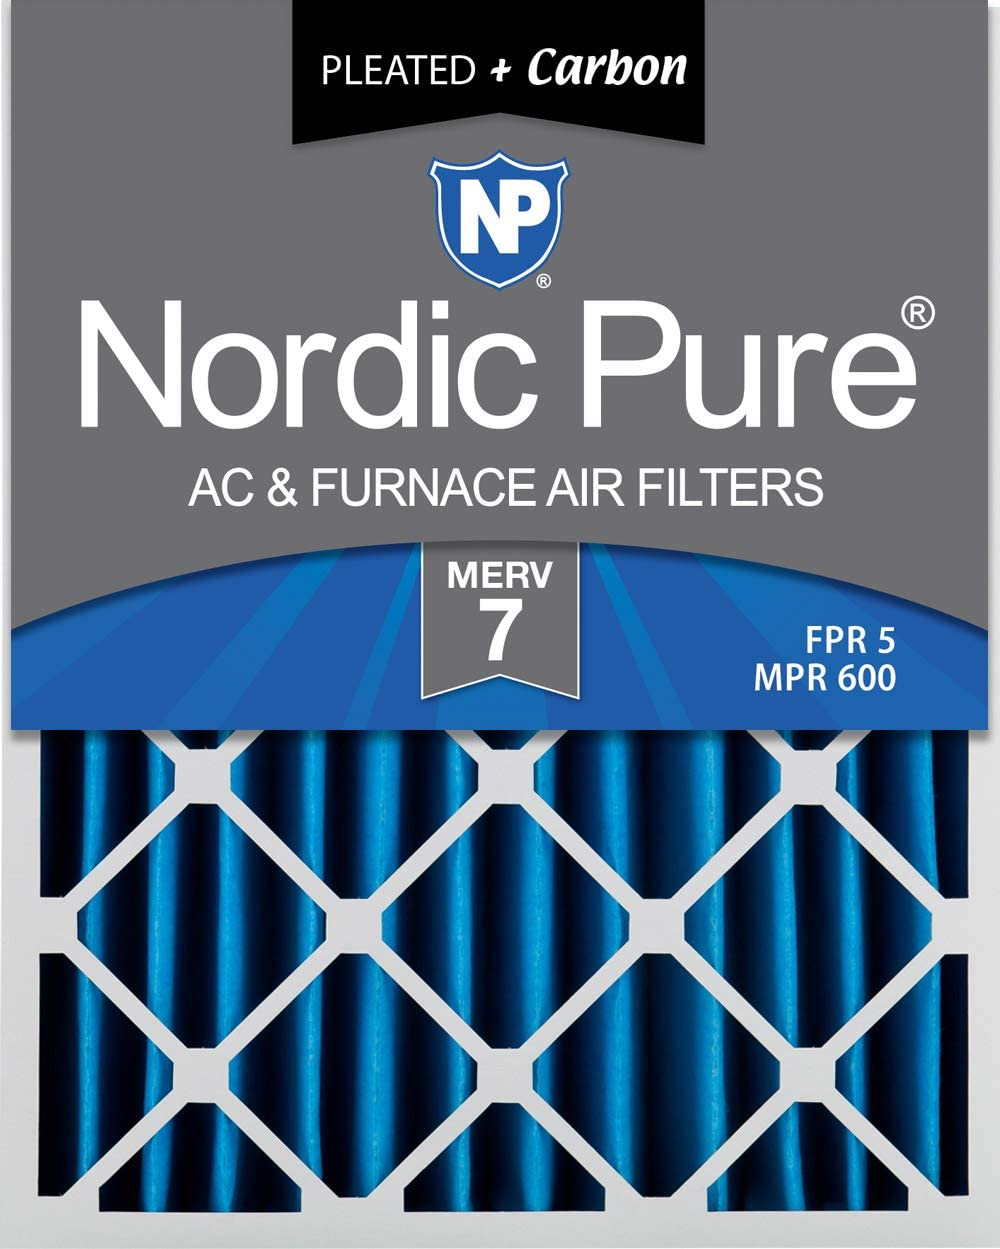 Nordic Pure 16x20x4 MERV 7 Pleated famous Carbon Air Plus New product! New type Fi AC Furnace